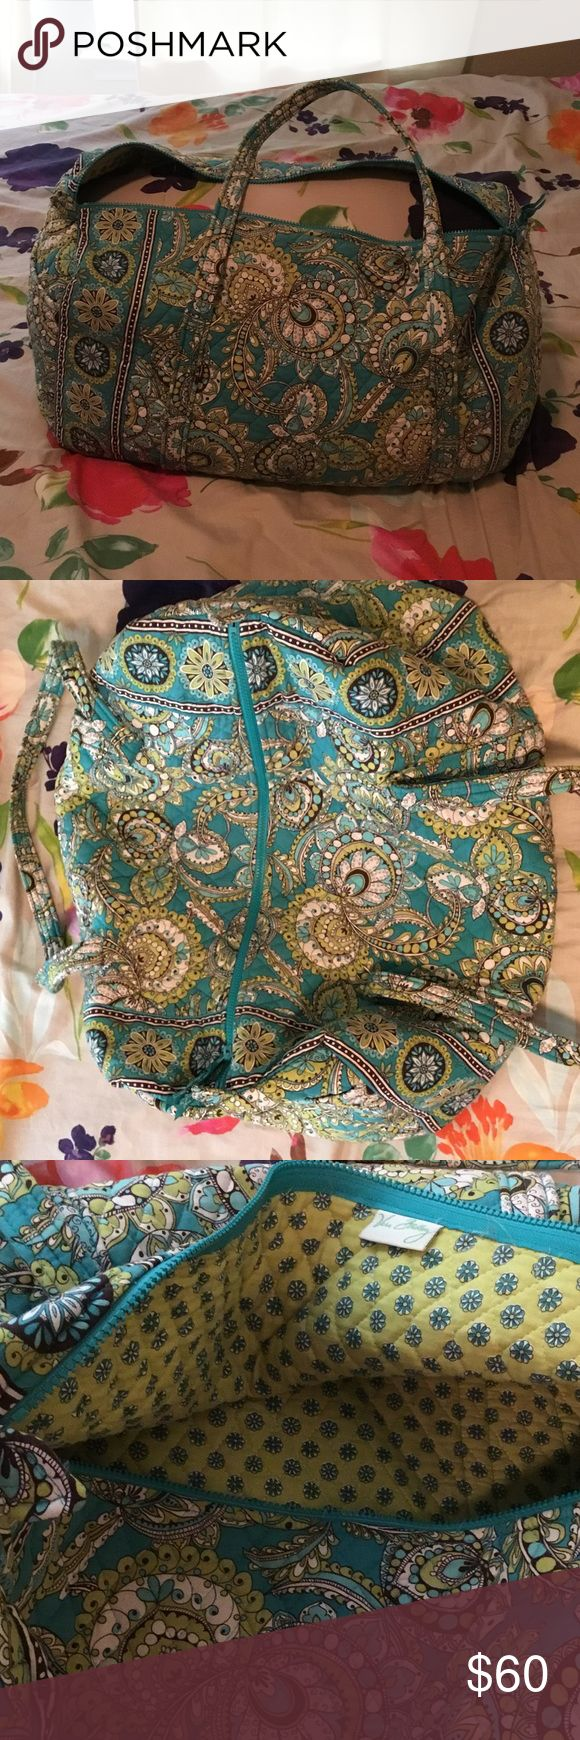 Vera Bradley tote Vera Bradley tote. Great condition no stains. Fits 3 full sized bed pillows inside. Vera Bradley Bags Totes